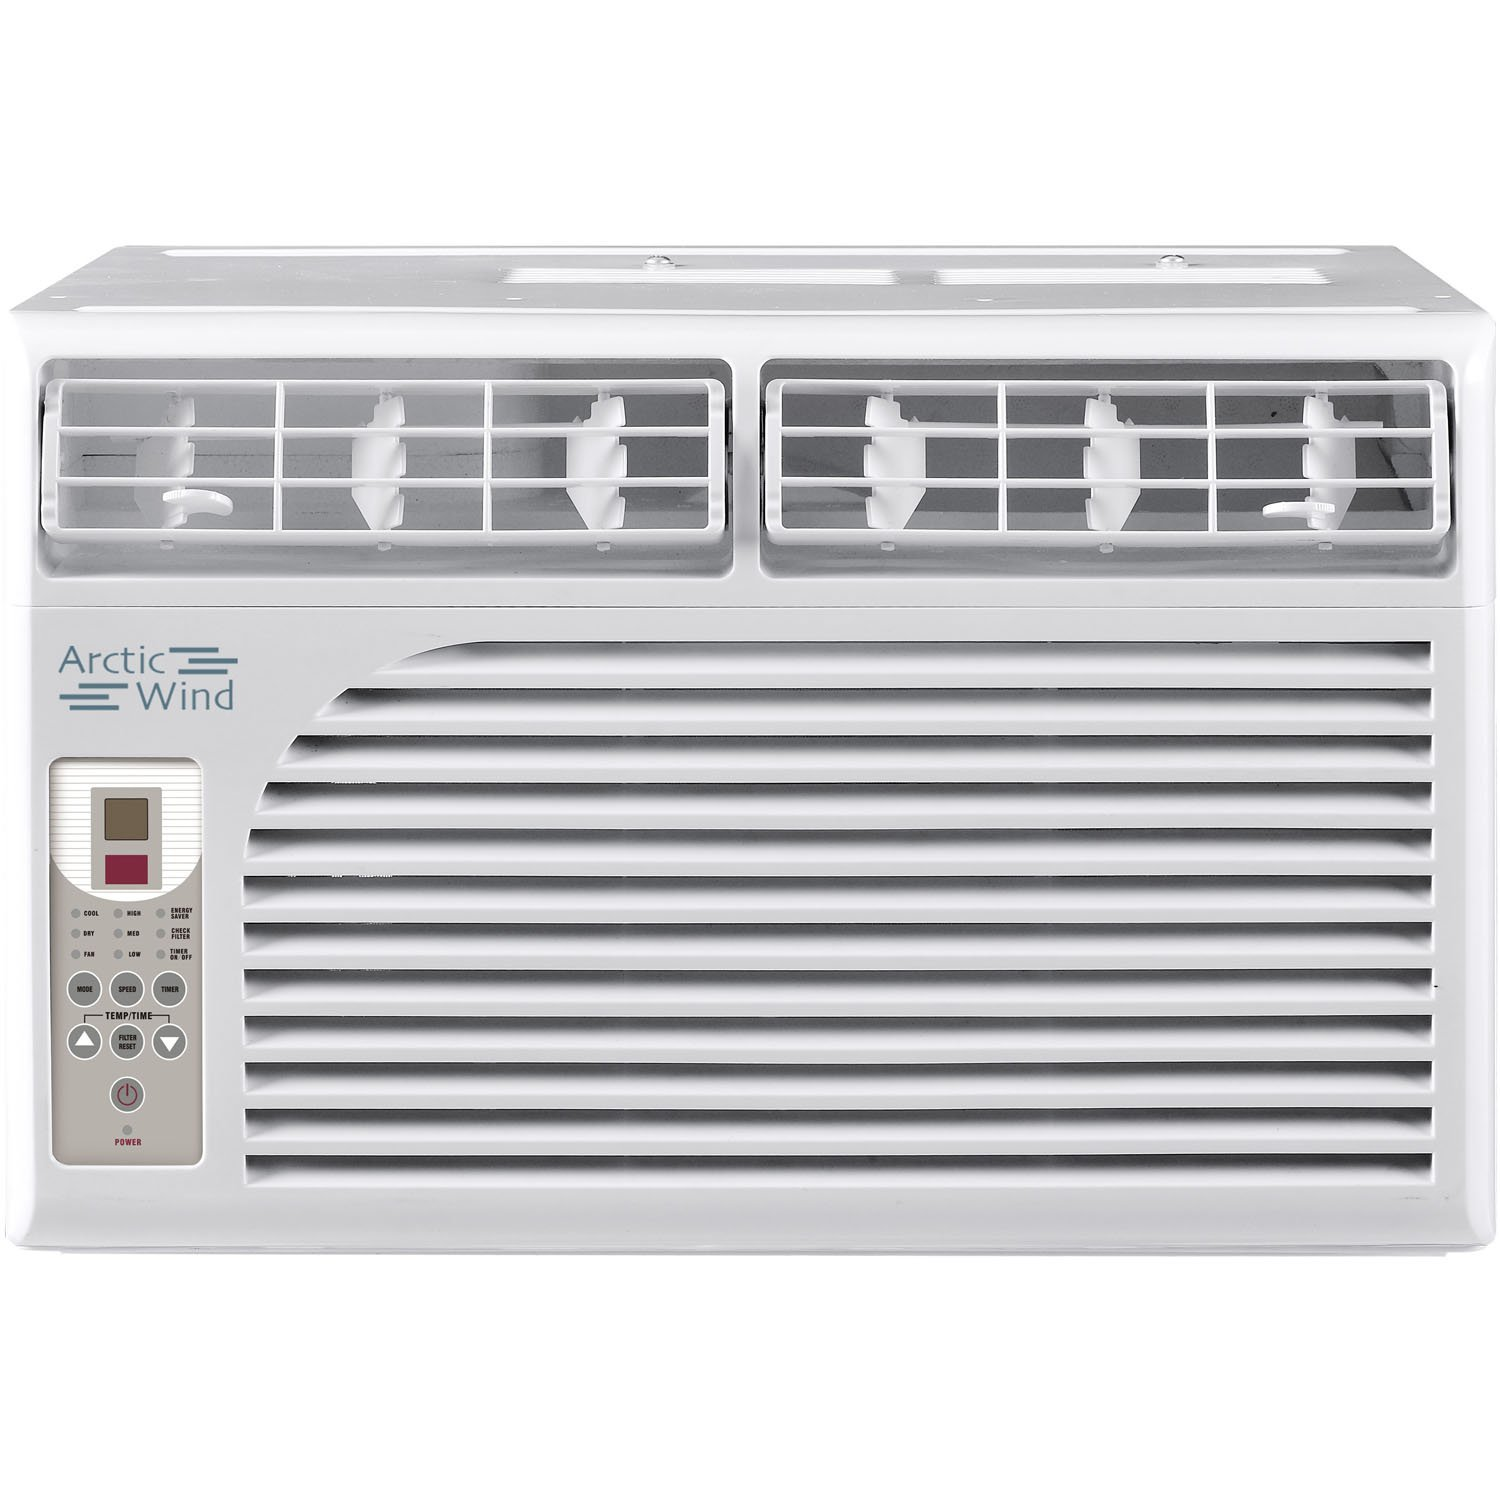 ARCTIC Wind 2016 Energy Star 6,000 BTU Window Air Conditioner, 6000, White